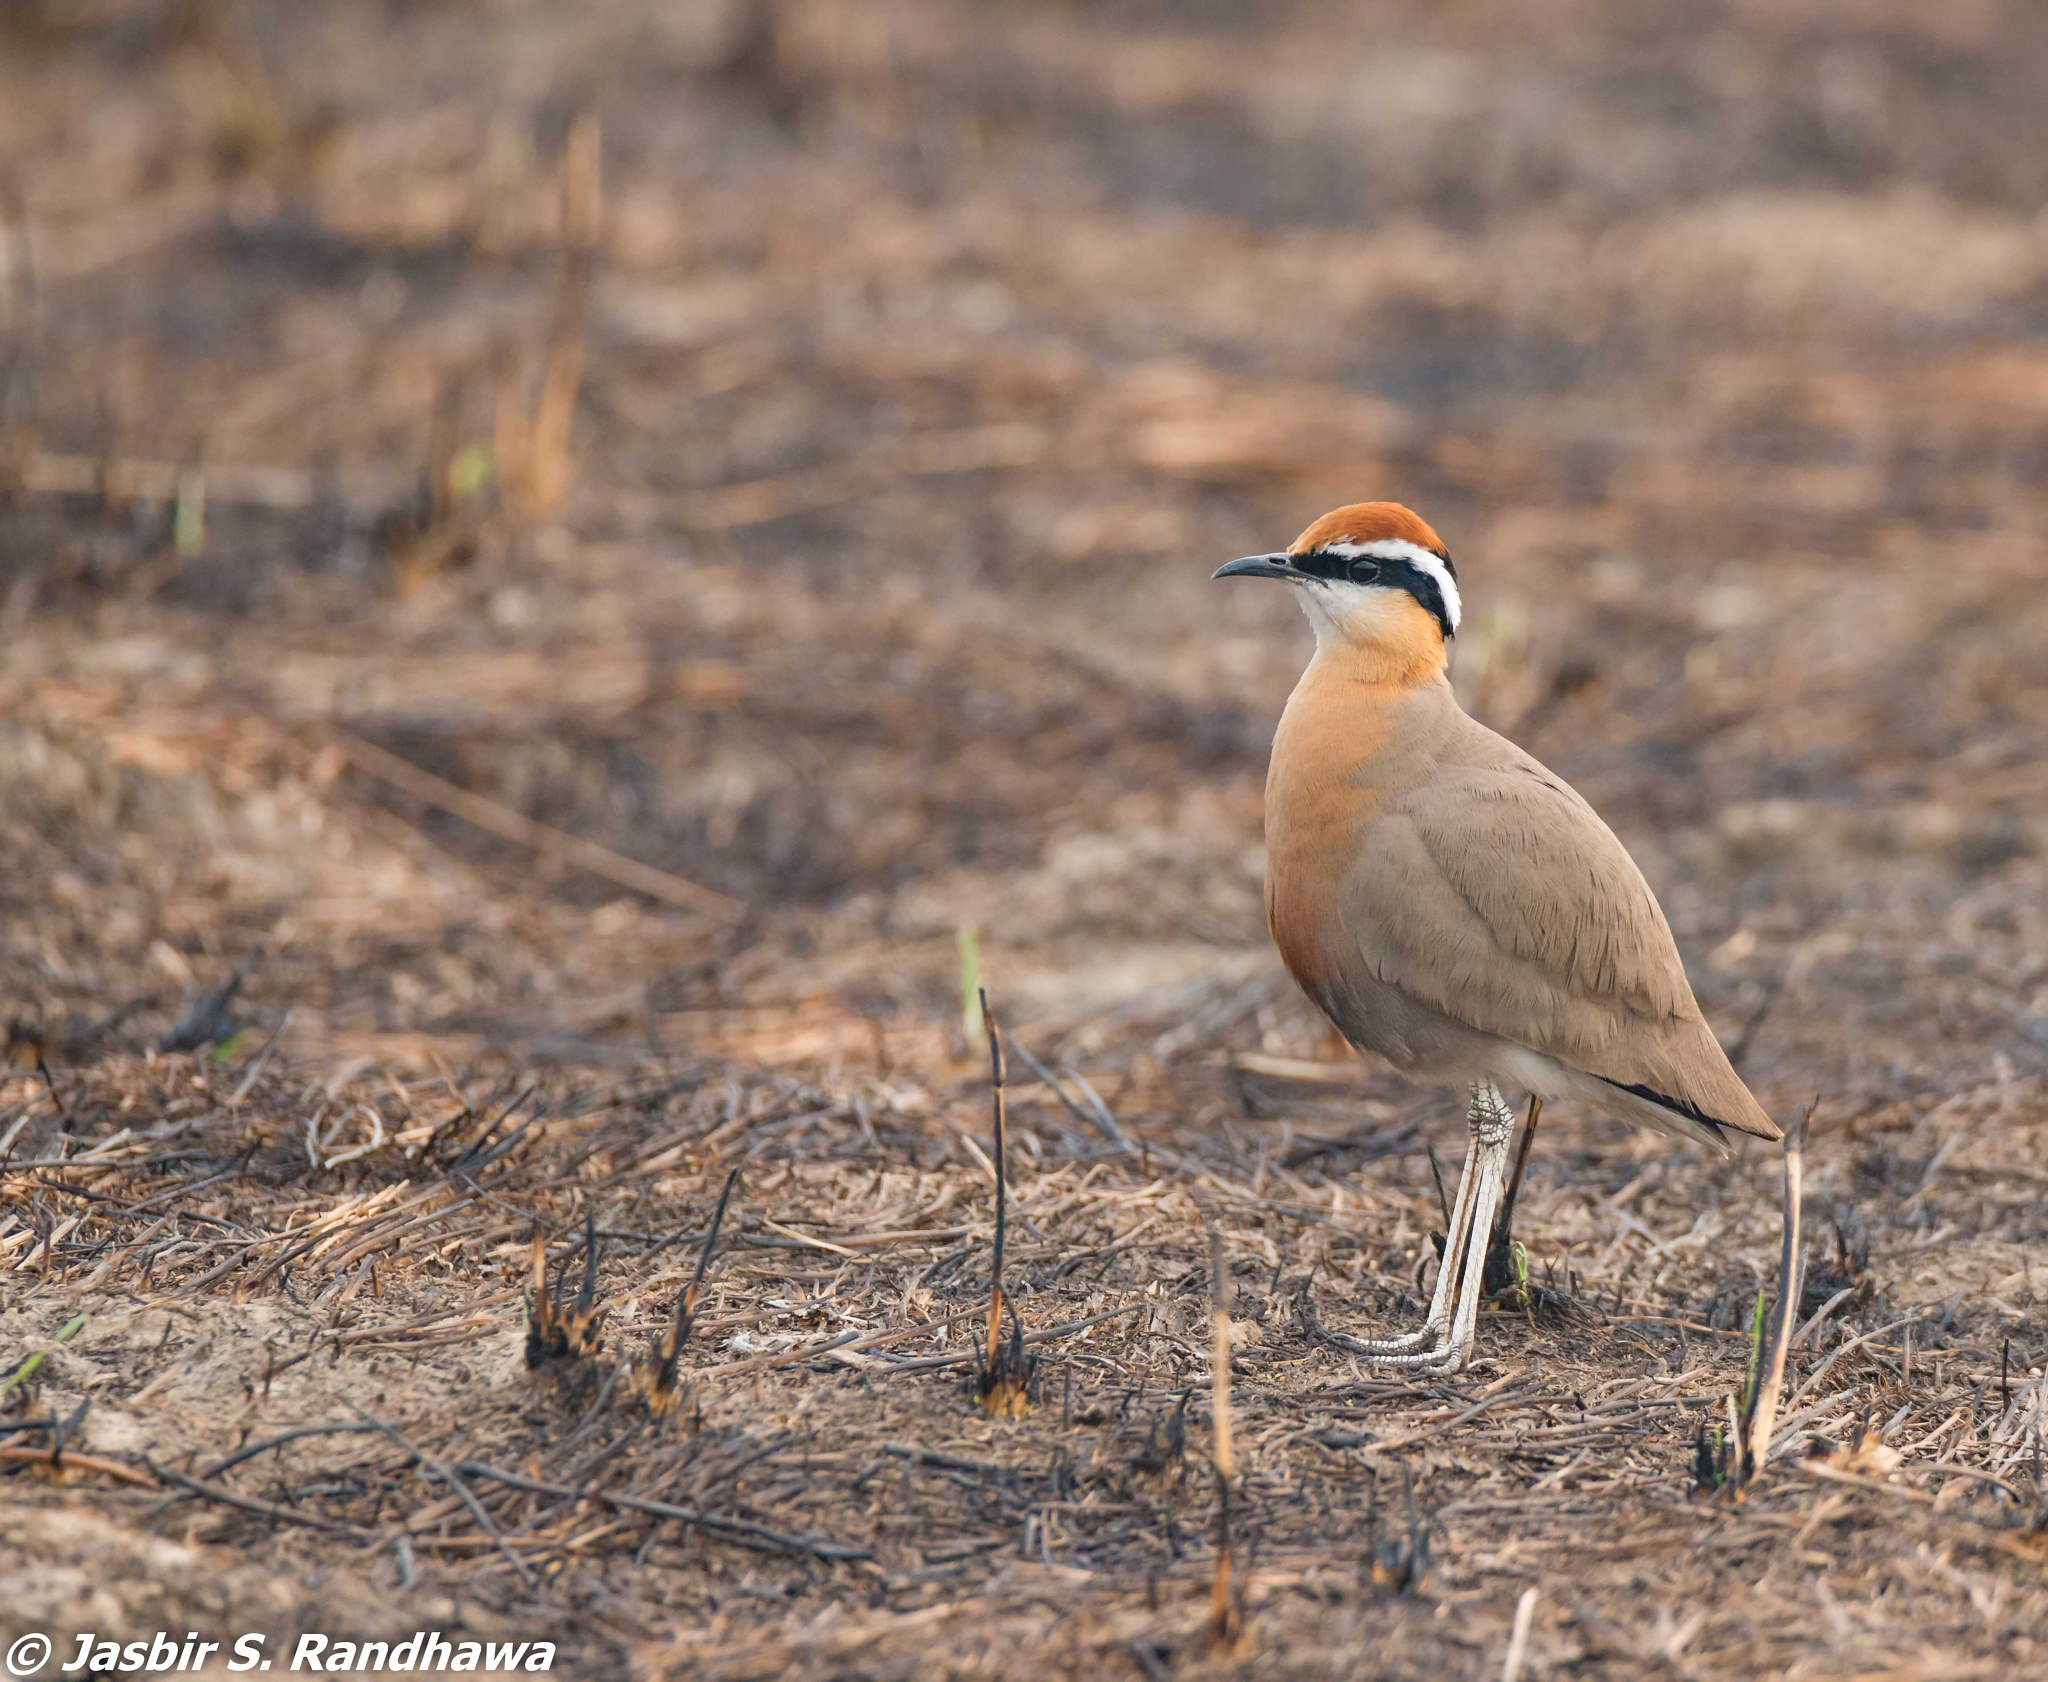 Indian Courser (Cursorius coromandelicus) by Jasbir S. Randhawa